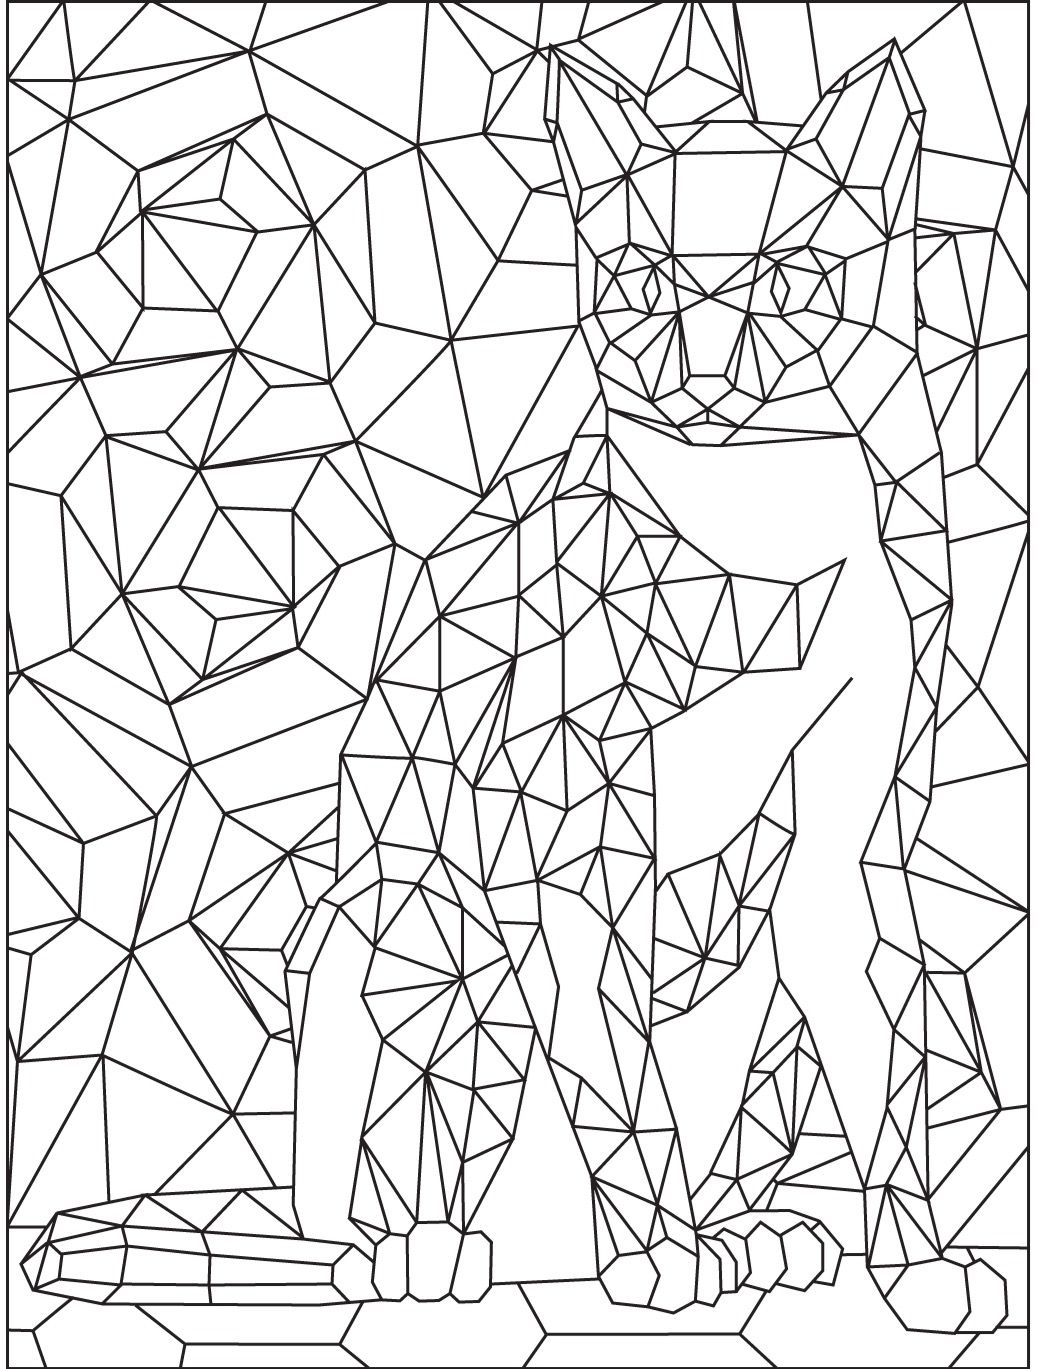 Geometric Cat colouring page | Colorish App : free ...